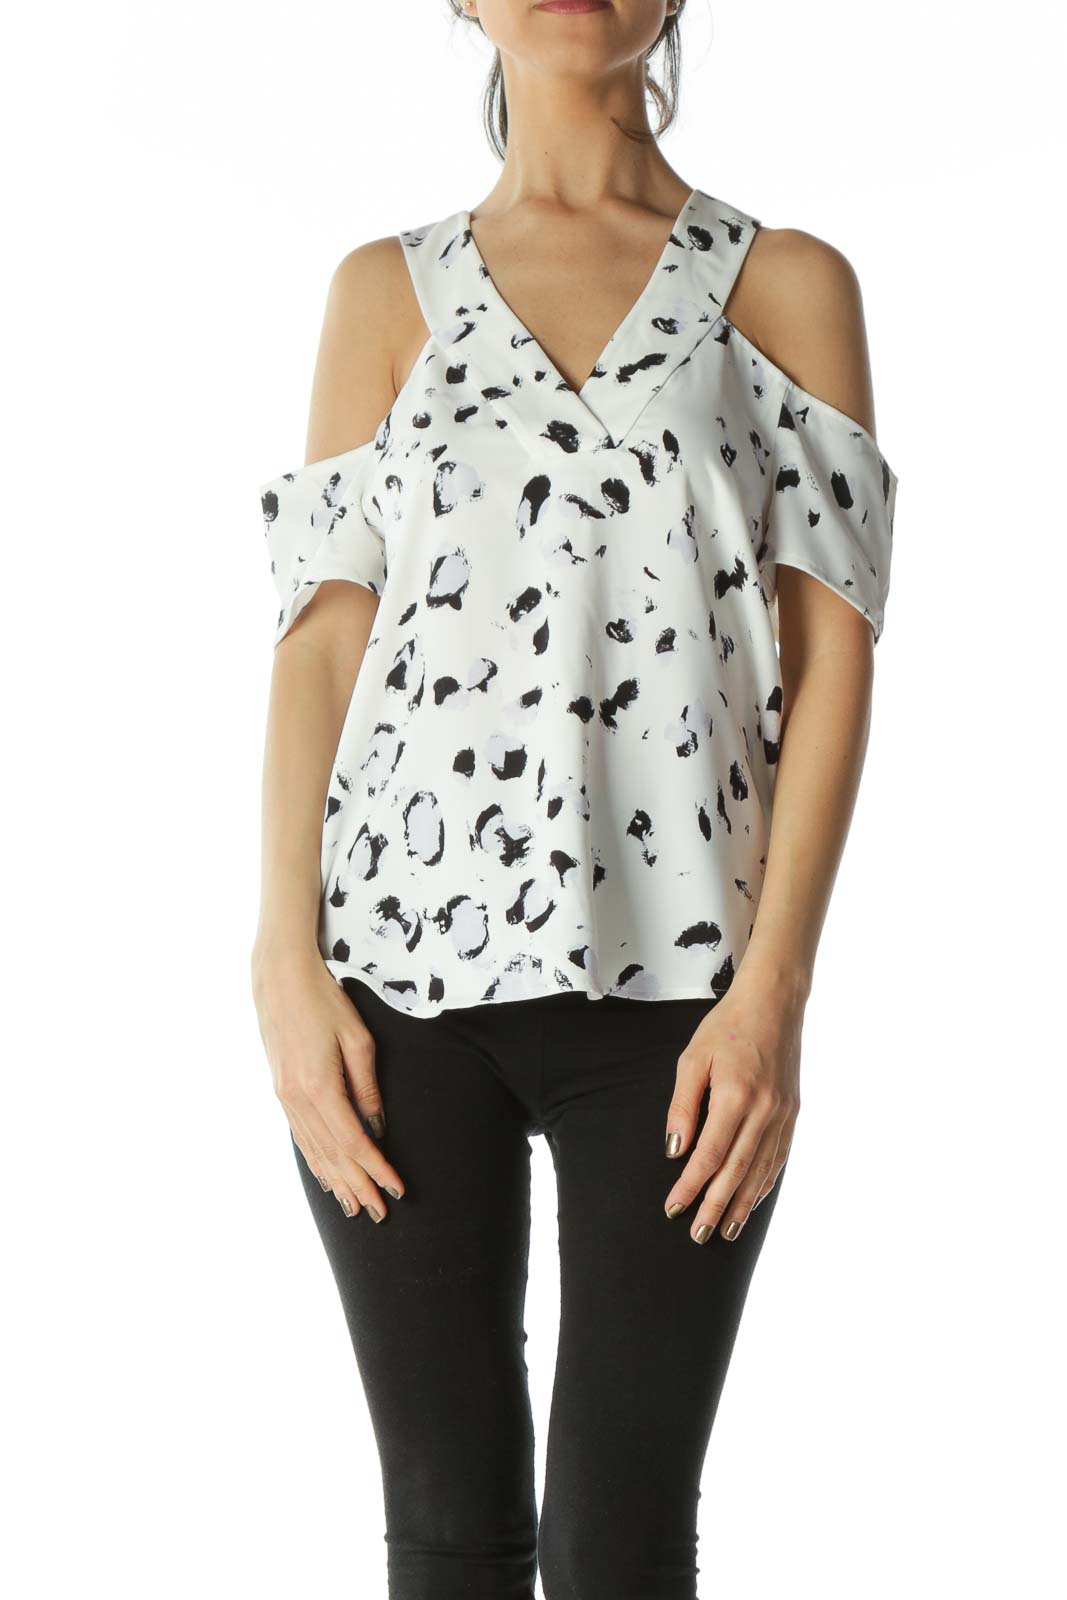 White and Black Graphic Off-The-Shoulder V-Neck Blouse Front